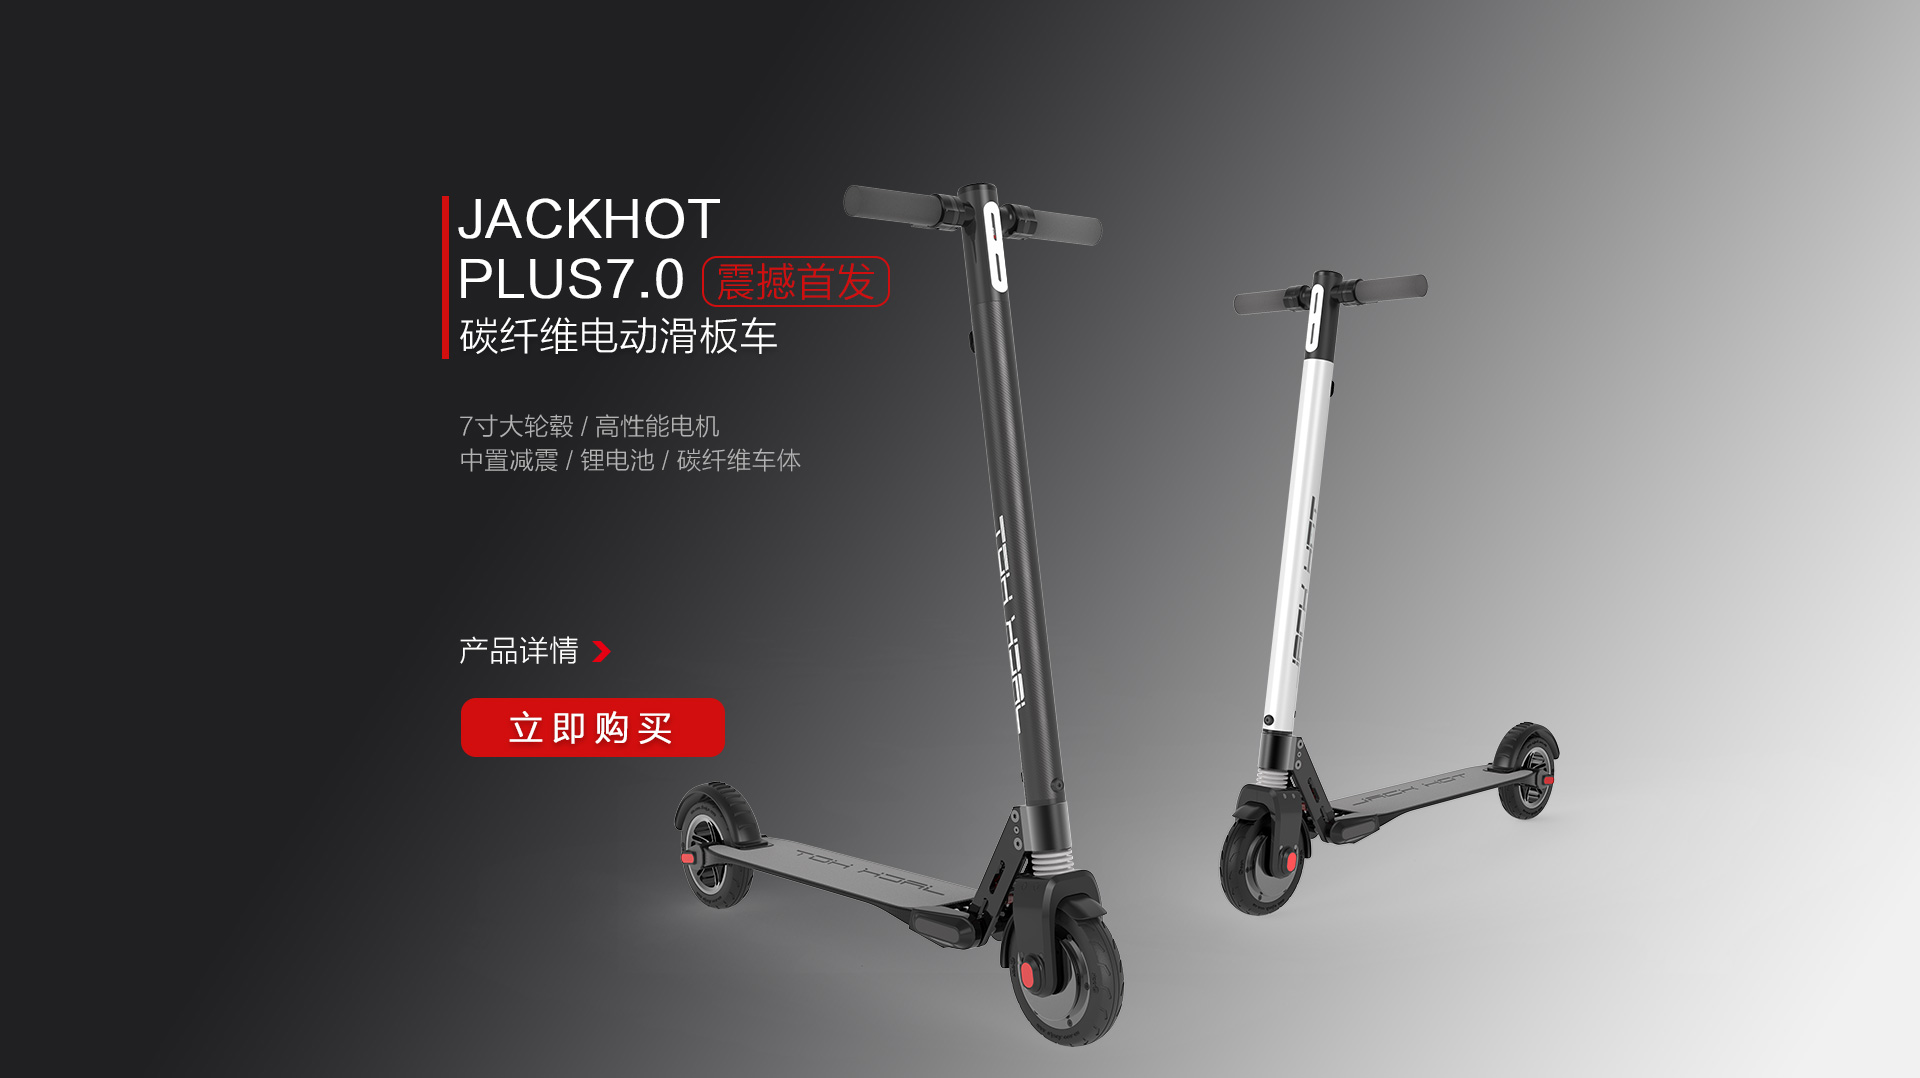 JACK HOT electric scooter, the new generation scooter